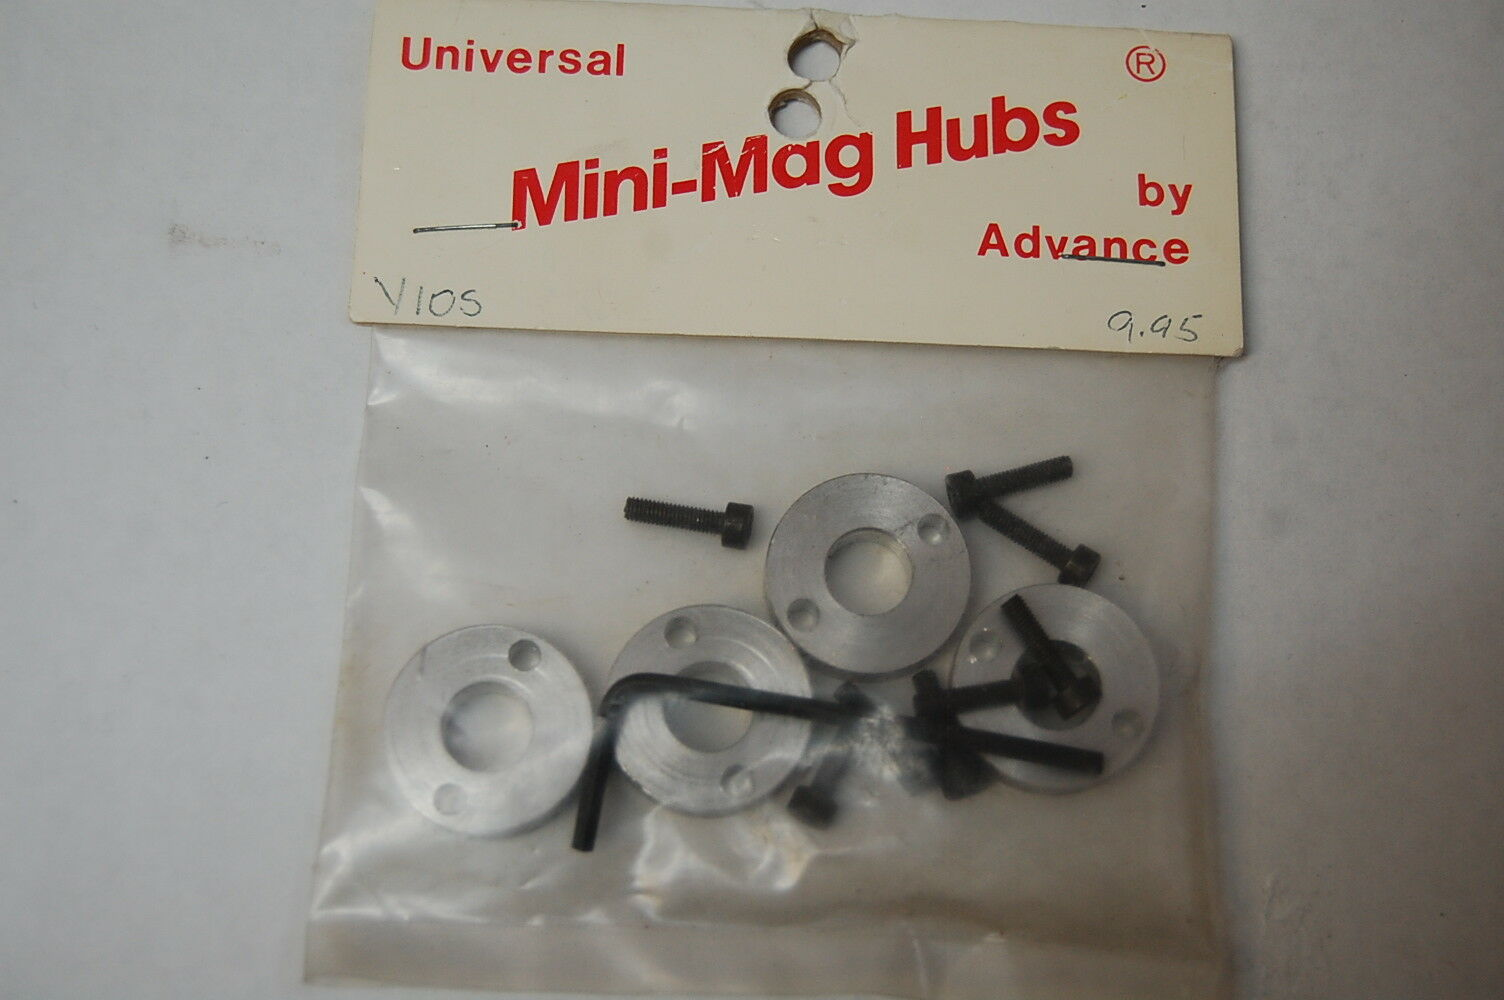 Mini Mags Advanced Engineering Vintage Set V10S Aluminum Hubs Front and Rear